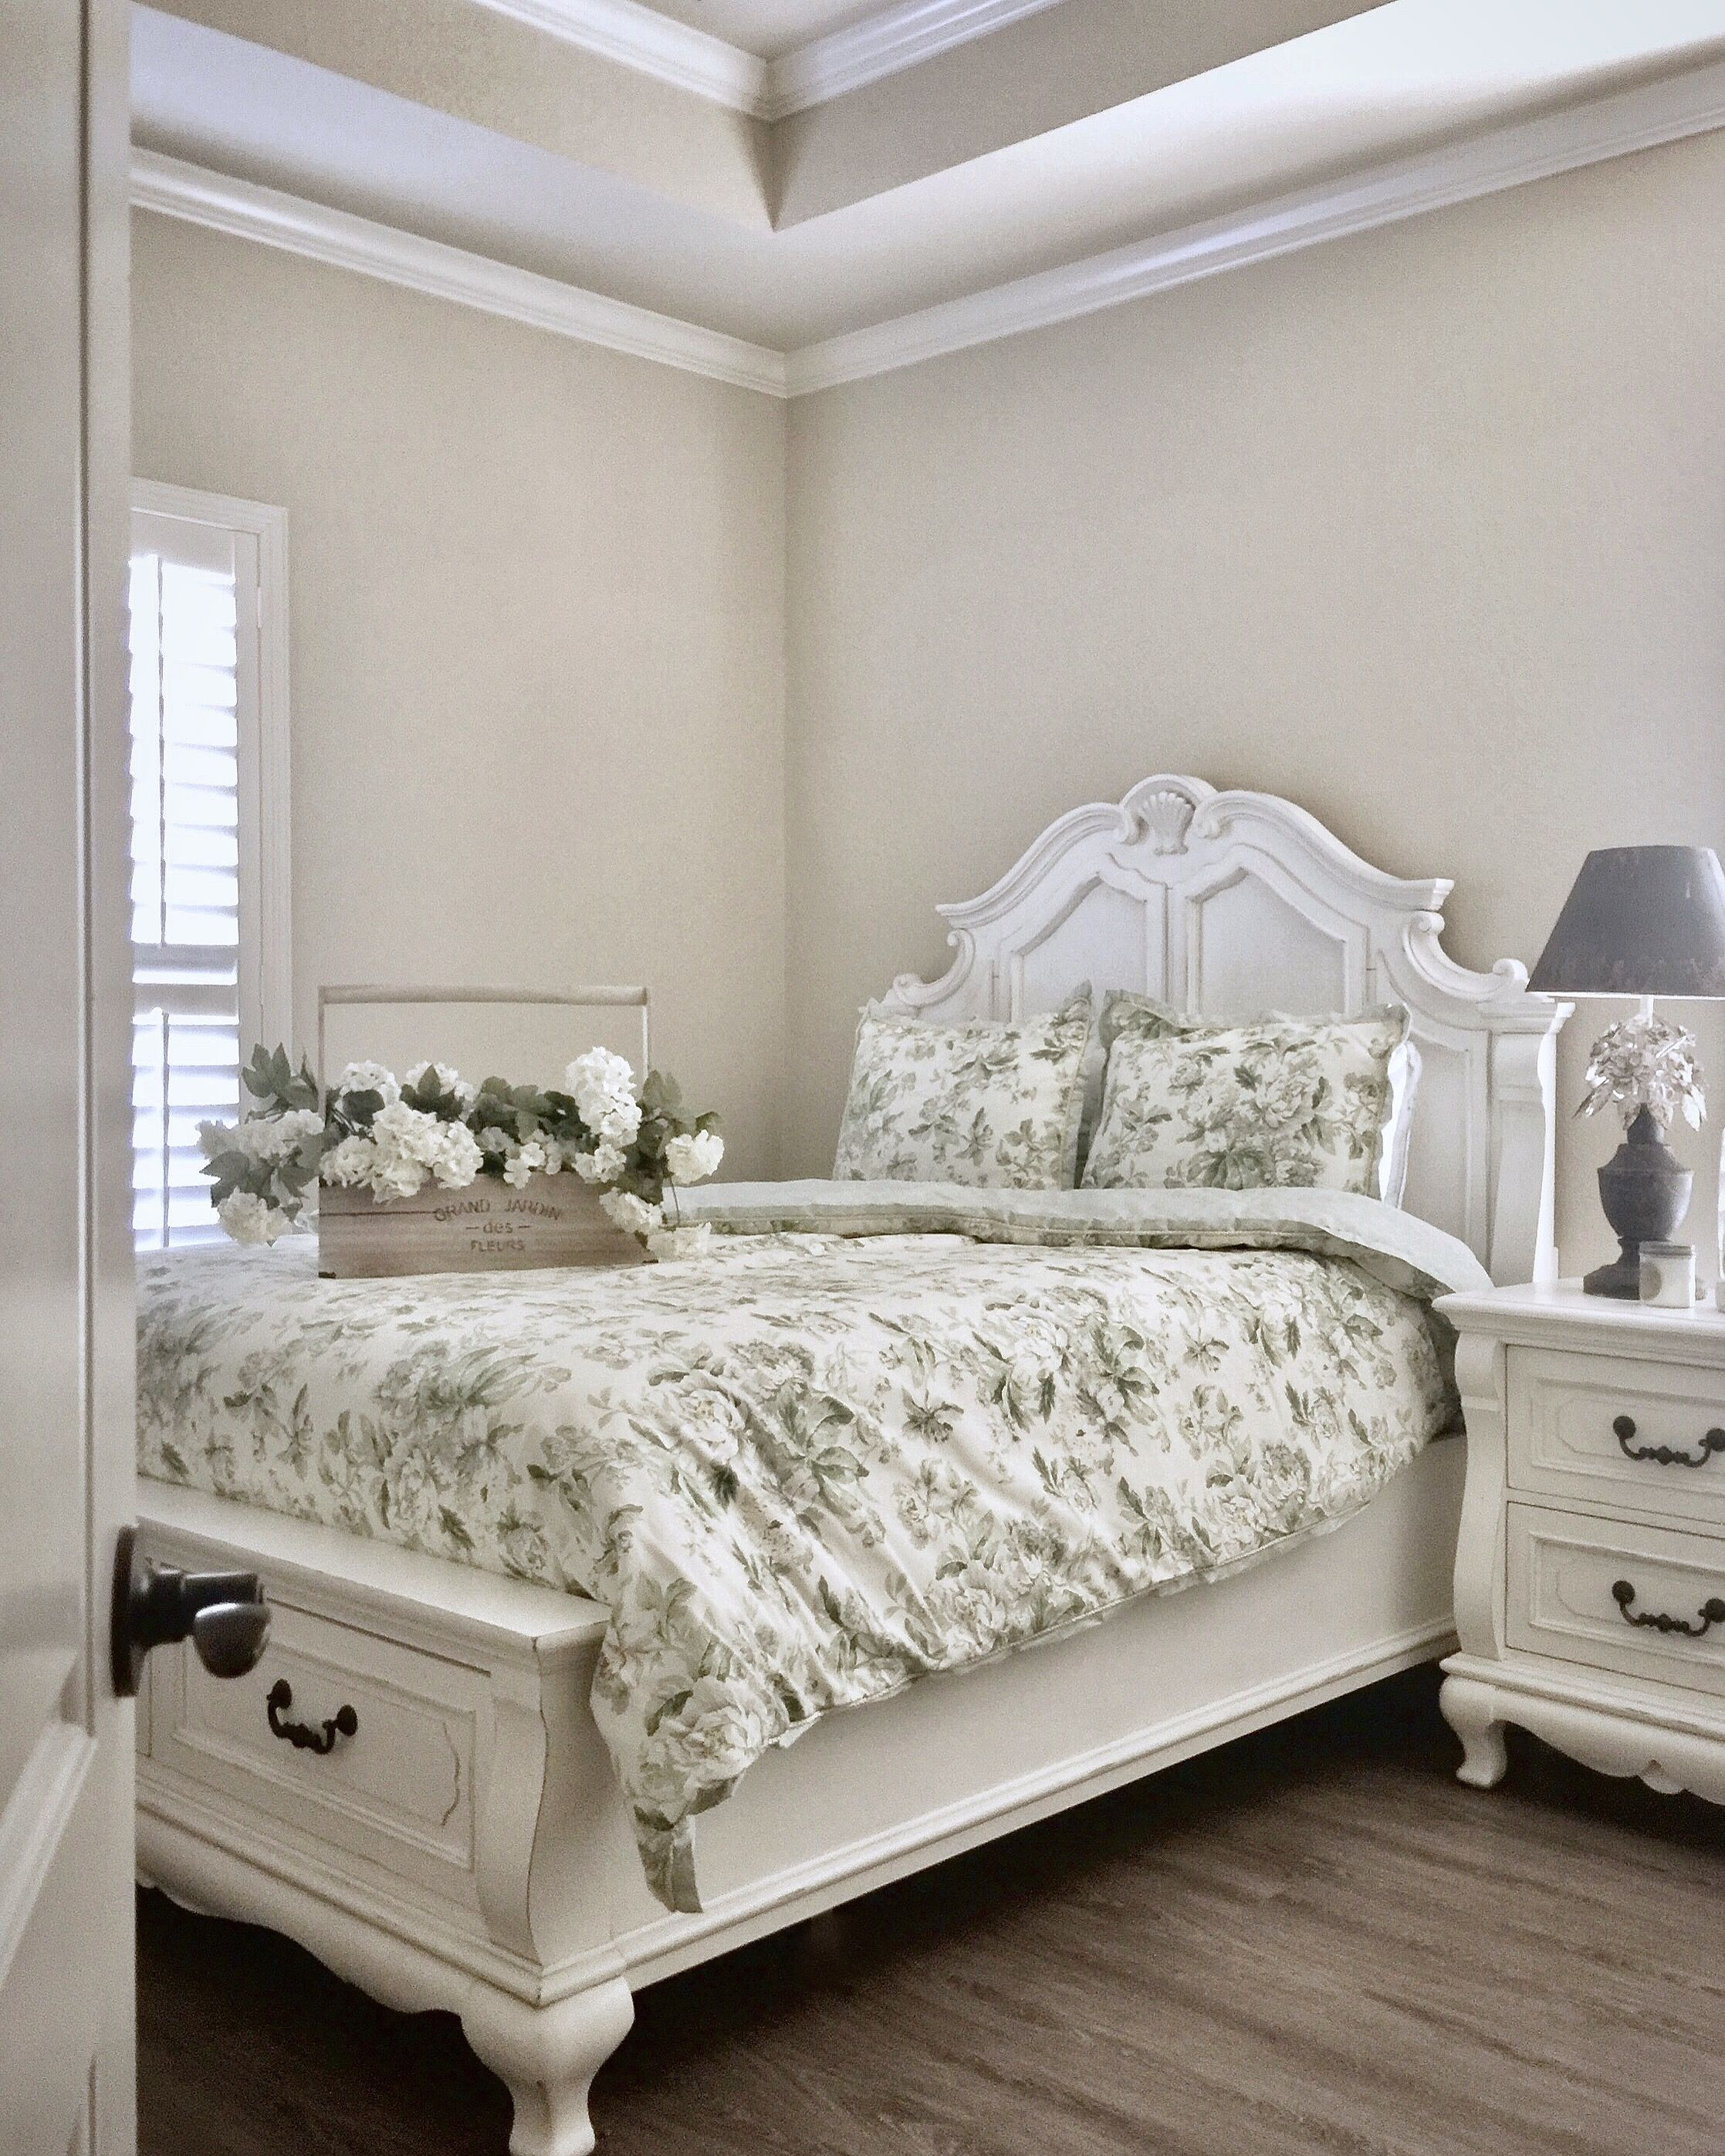 French country bedroom @gatheredgrace . . #bedroom #decor ...